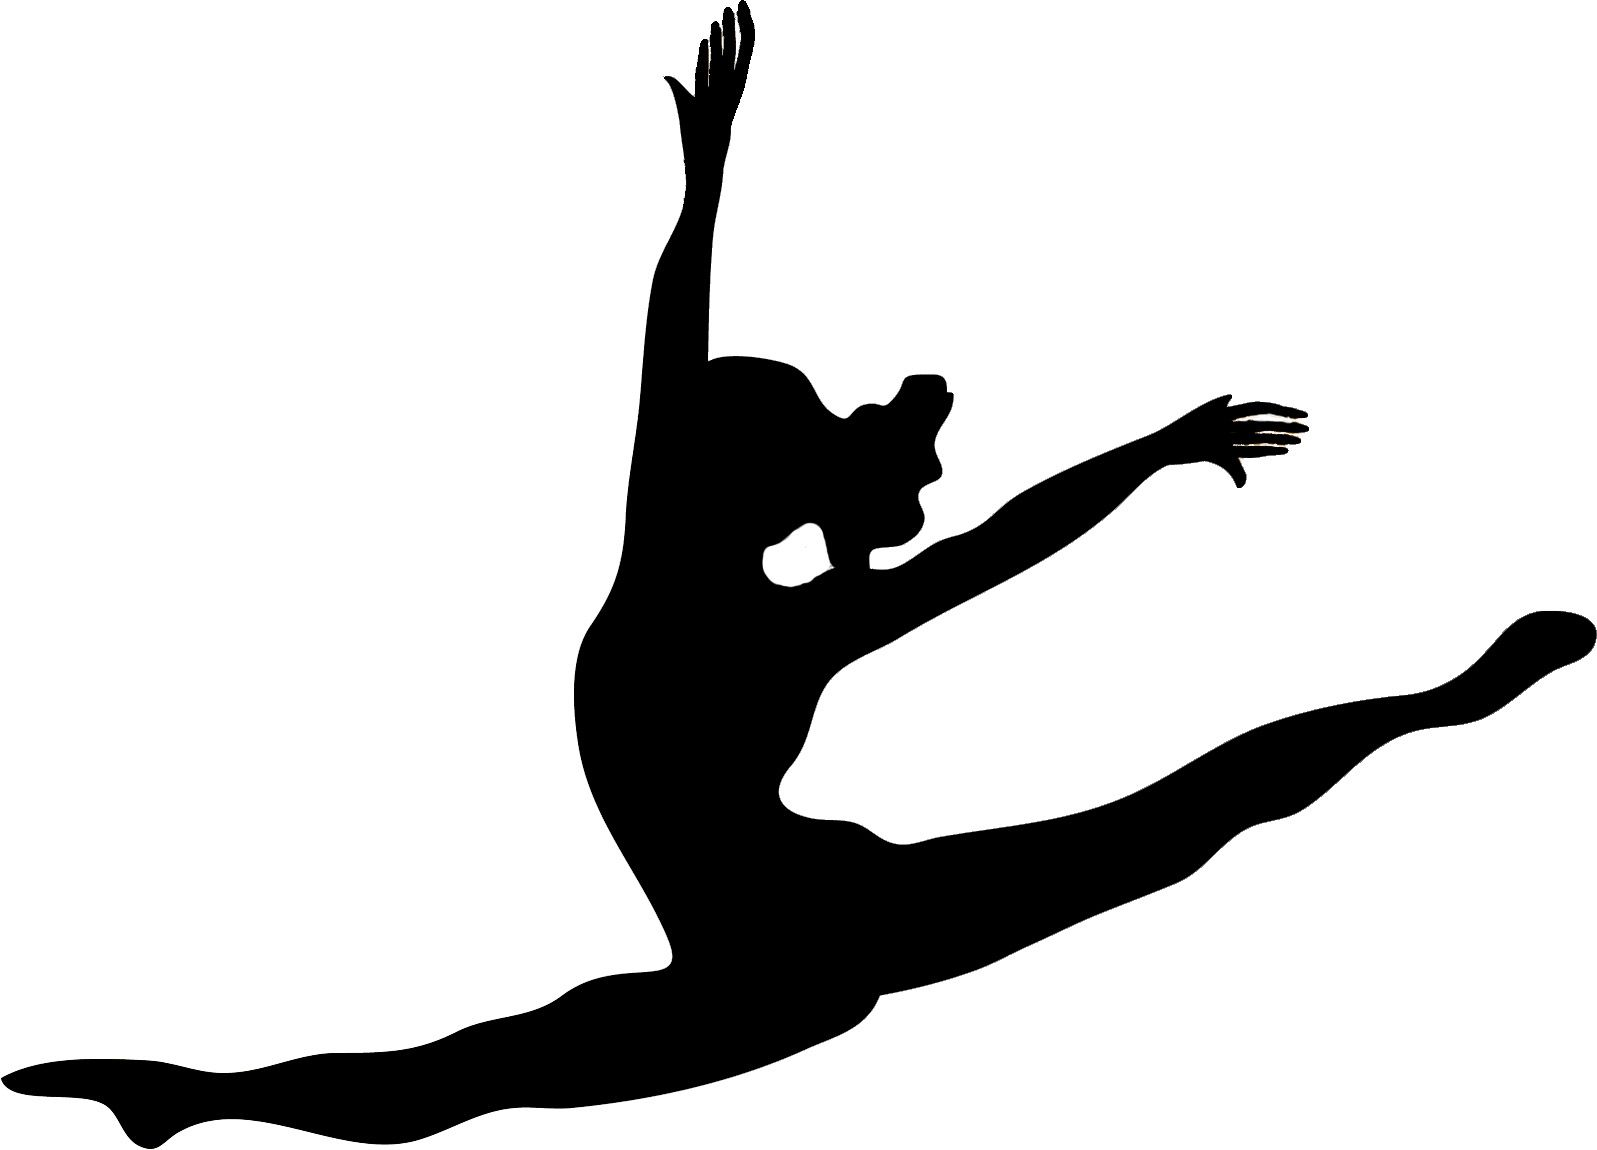 Dance Silhouettes Vector Get A Silhouette Of Myself Doing A Leap And Then Get A Tattoo From That Descr Dance Silhouette Silhouette Clip Art Dancer Silhouette